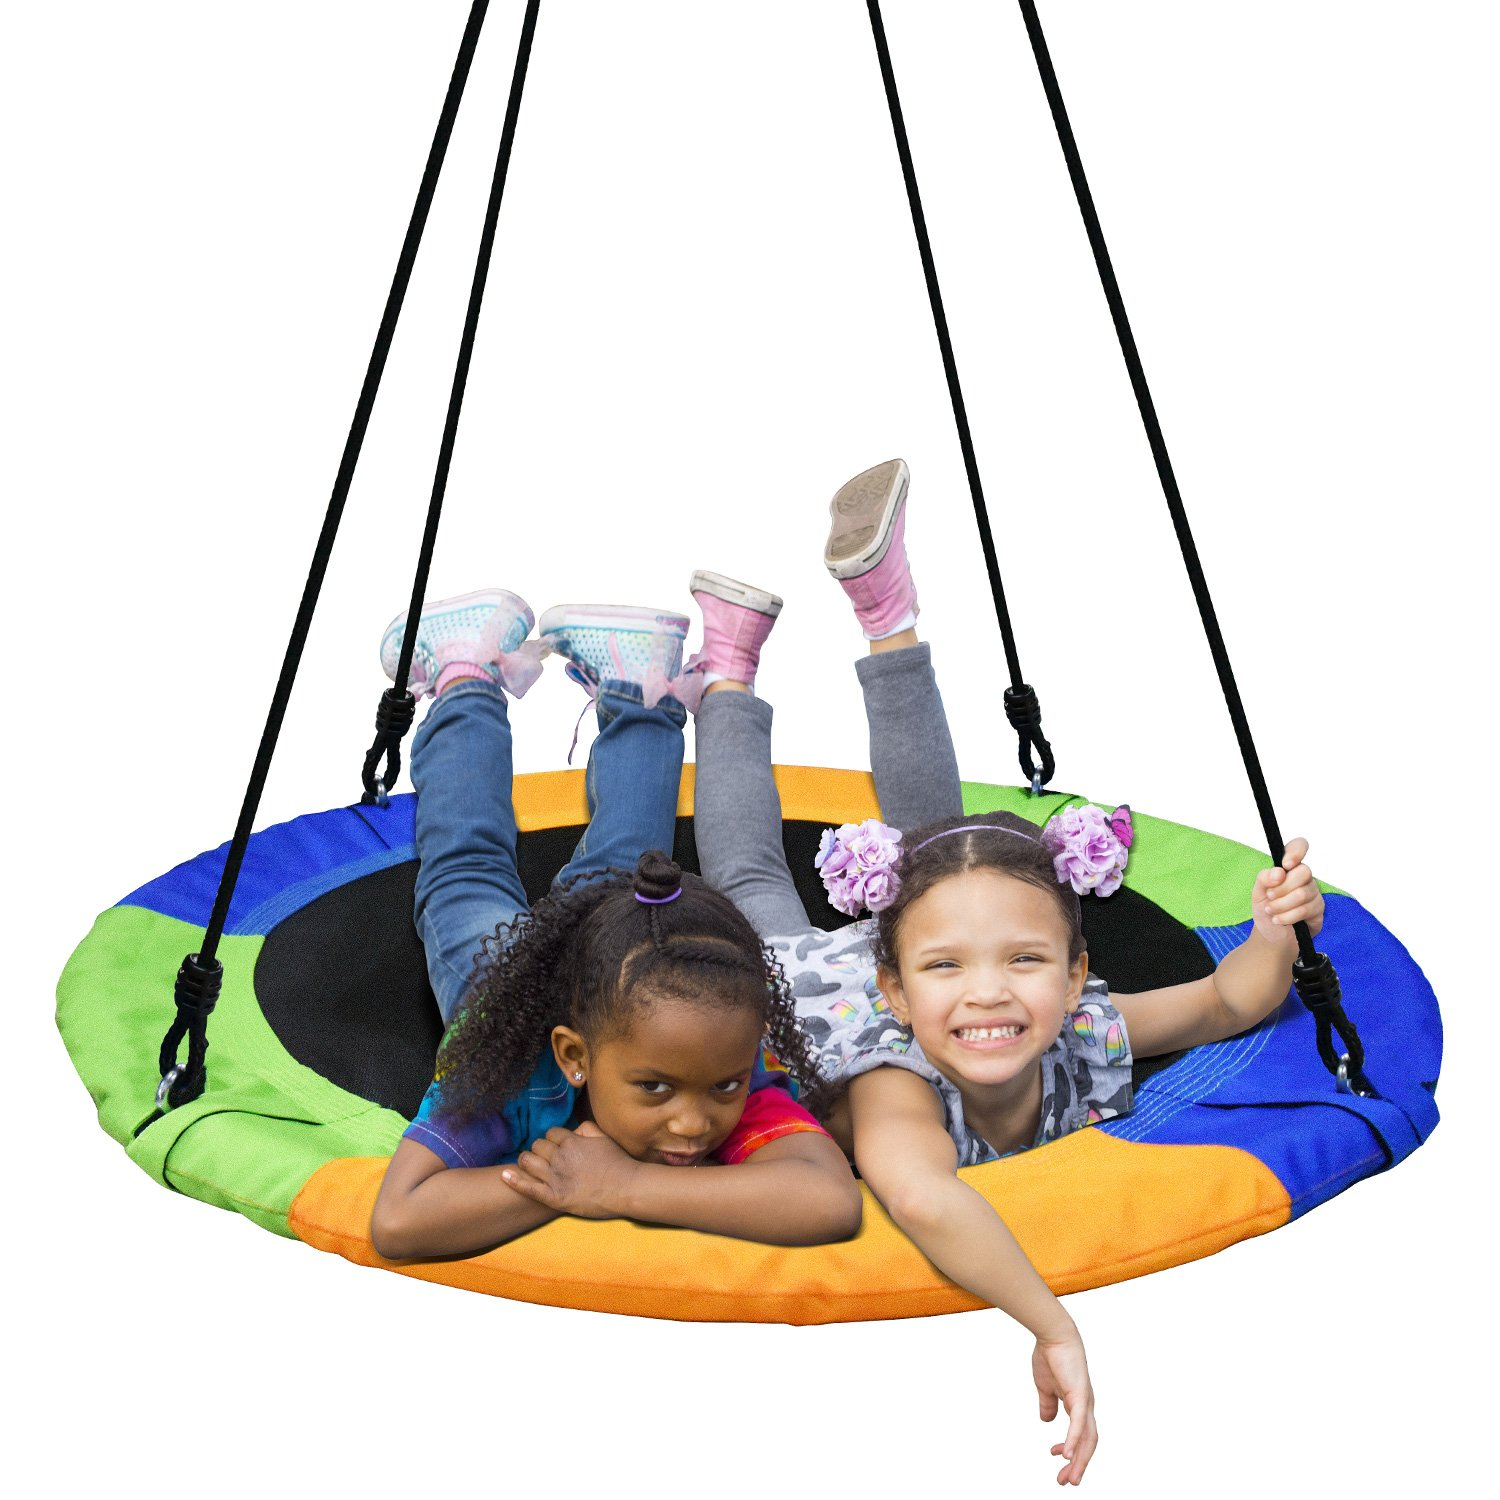 PACEARTH Saucer Tree Swing Flying More Weight Capacity 100cm/40'' Swing 2 Added Hanging Straps Adjustable Multi-Strand Ropes Colorful Swing Seat for Children Adults by PACEARTH